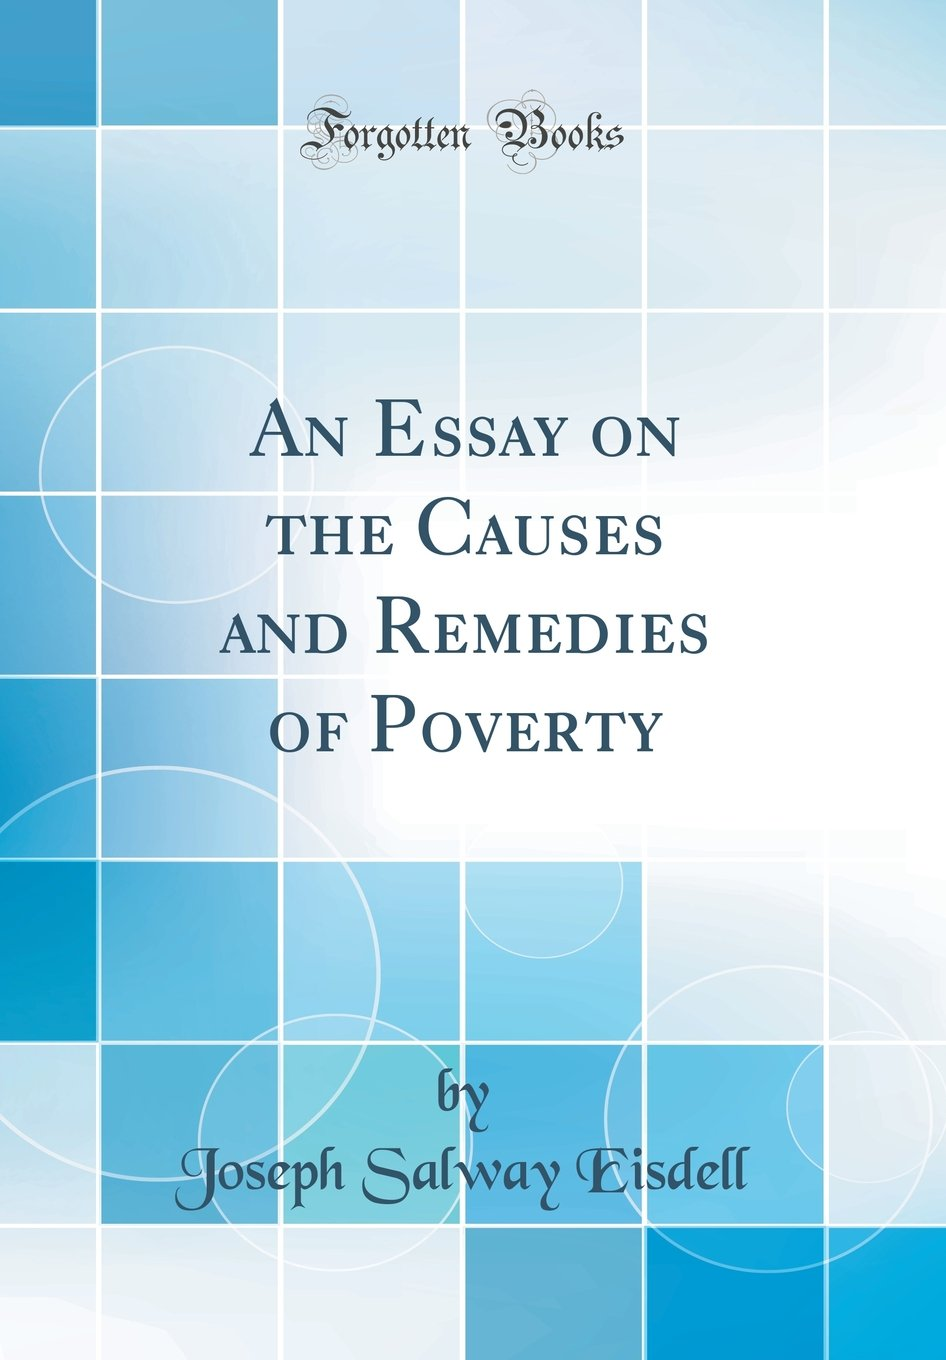 an essay on the causes and remedies of poverty classic reprint  an essay on the causes and remedies of poverty classic reprint hardcover   february